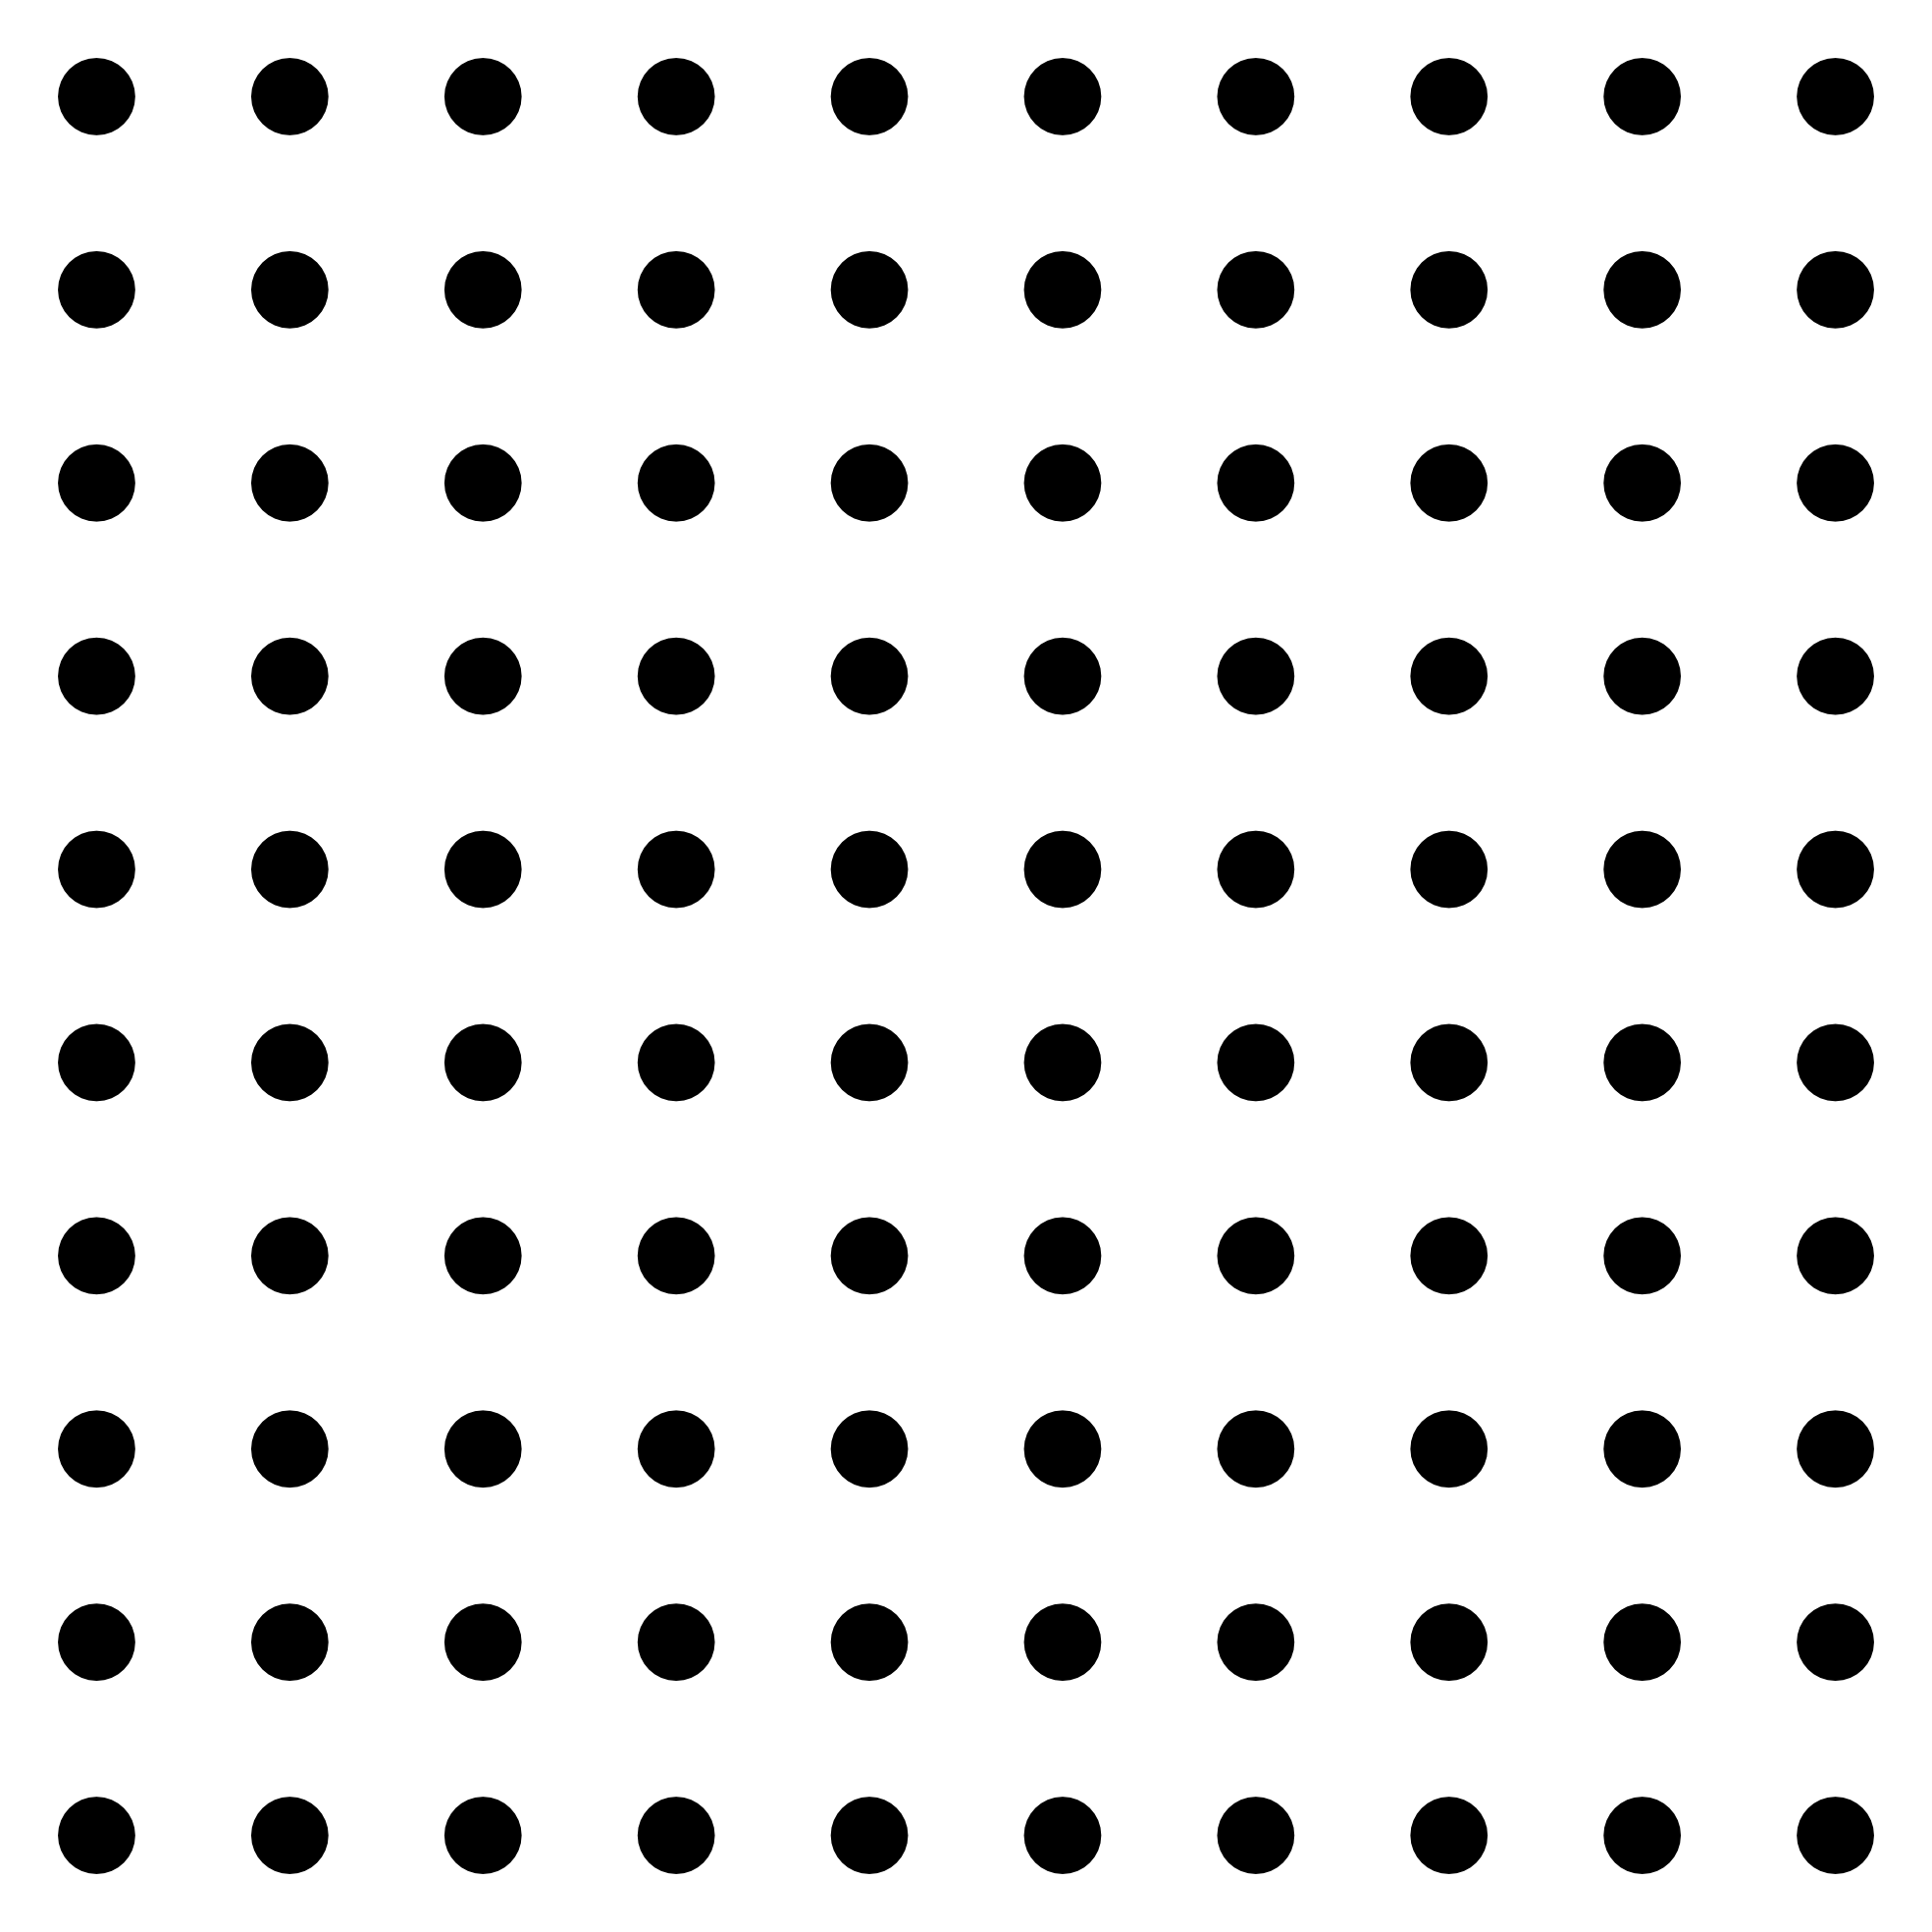 Dot . Pattern clipart vector black and white stock